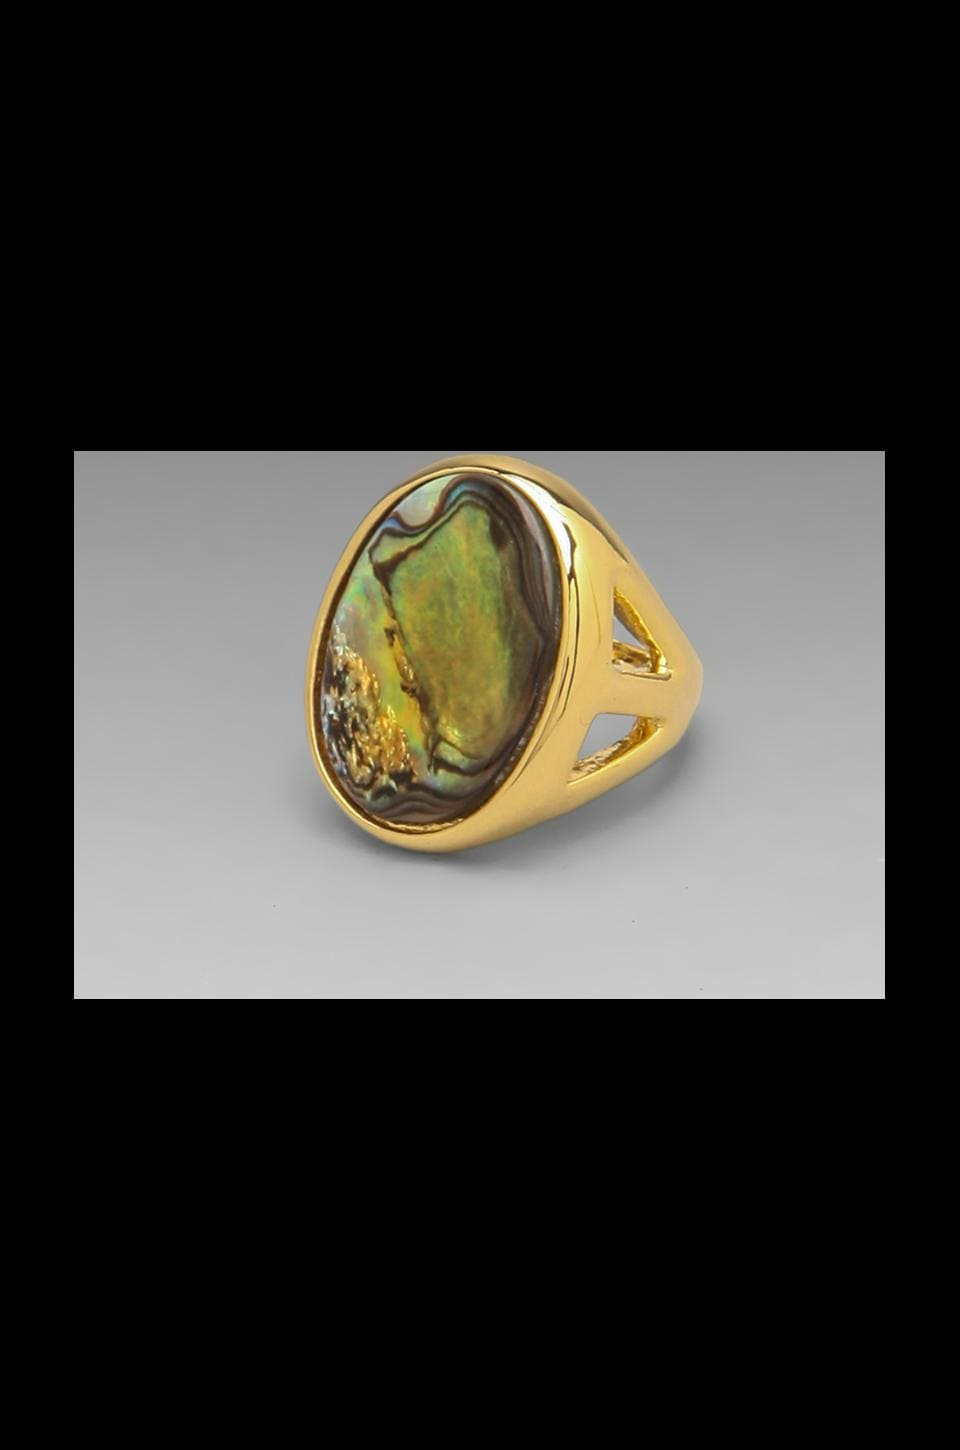 Kenneth Jay Lane Open Faced Abalone Ring in Abalone